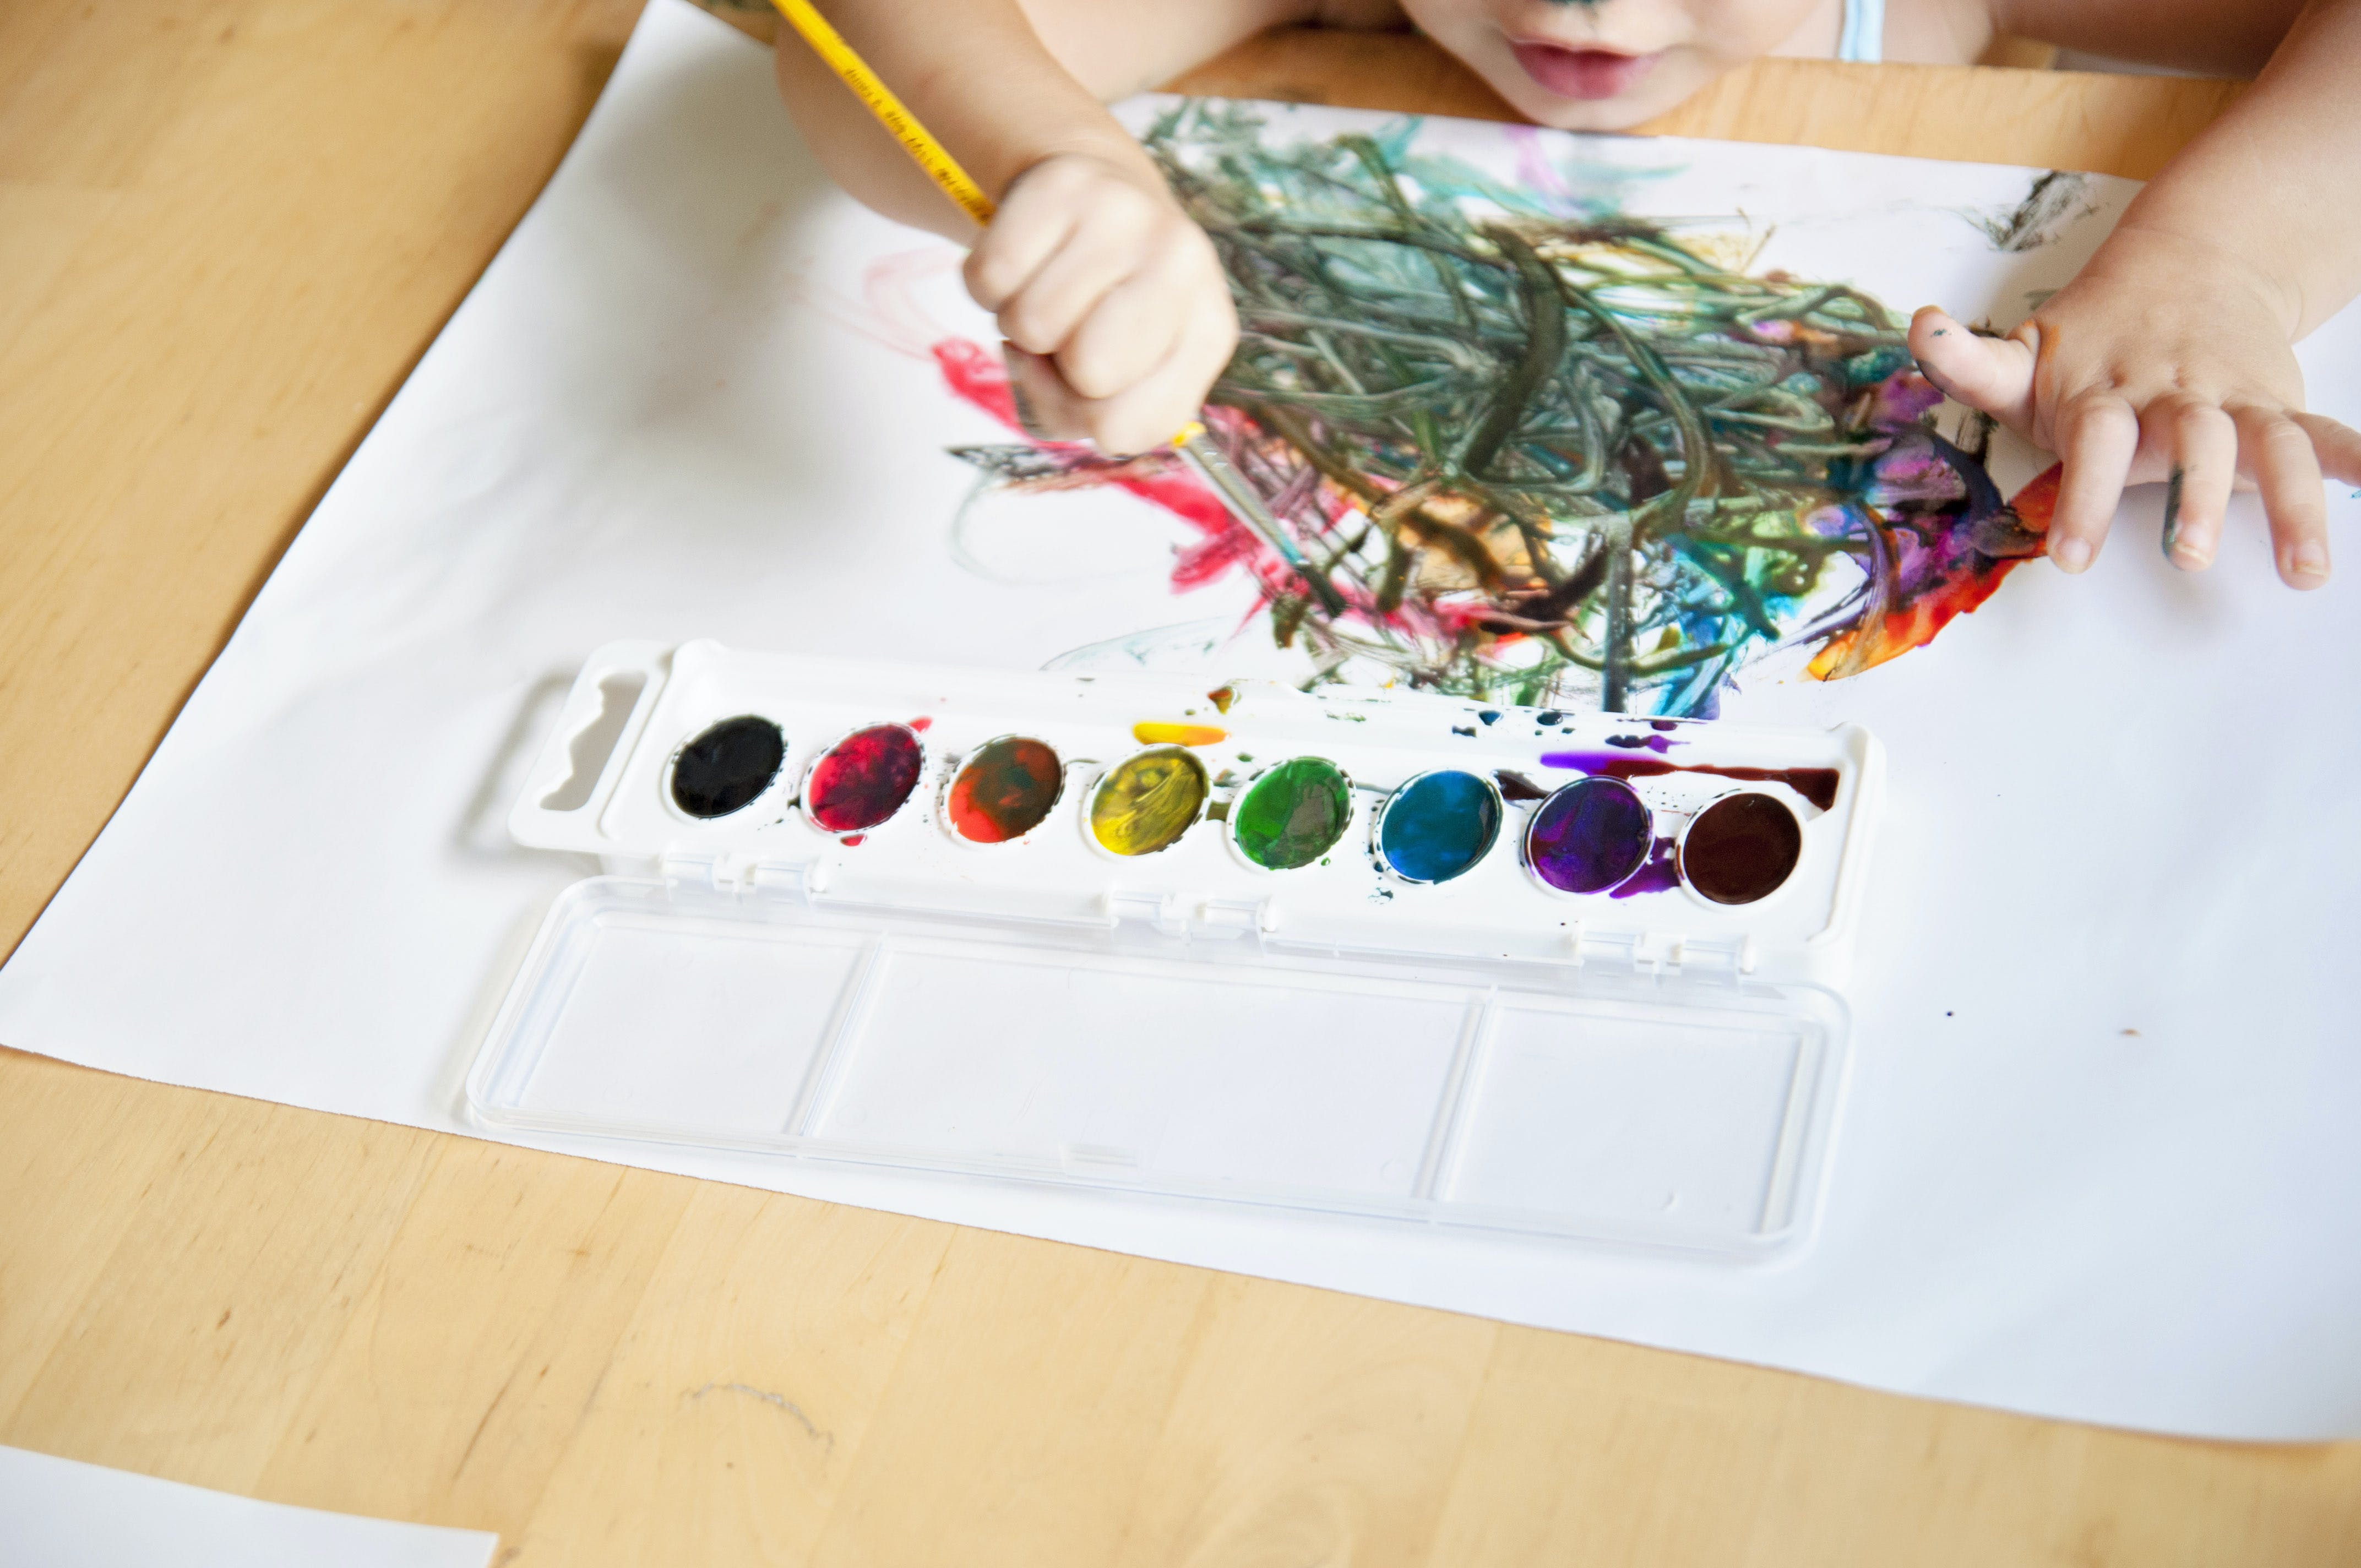 Free stock photo of arts and crafts, child, child painting, child's hand